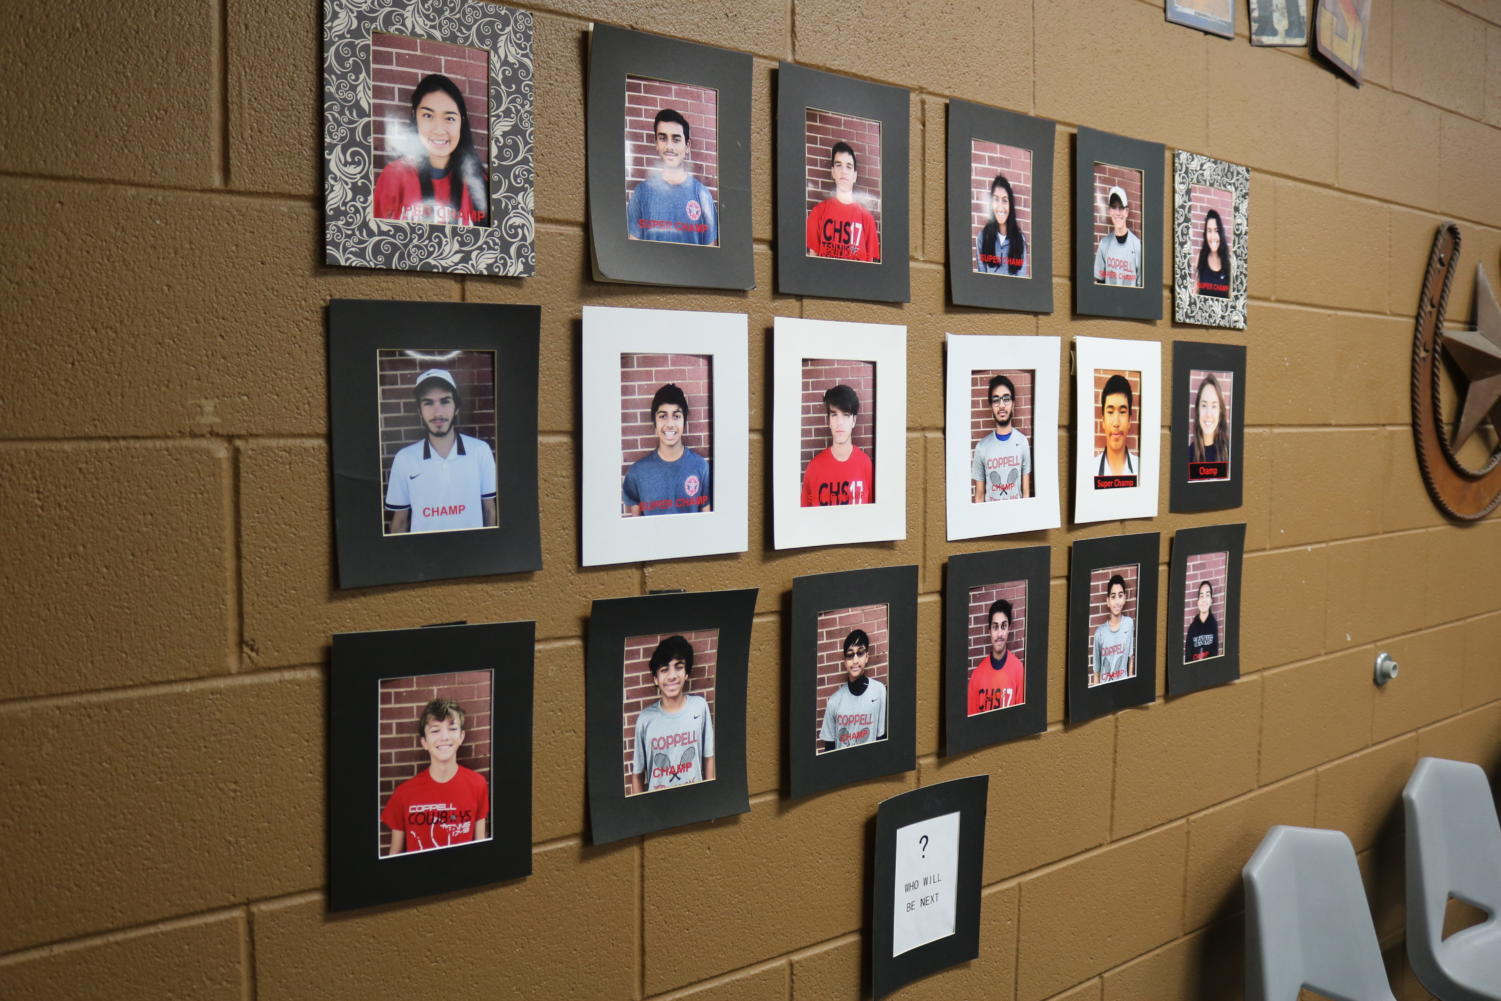 Coppell High School tennis players get framed pictures on the wall inside the CHS tennis center when they become champs or super champs. Tennis players become champs and super champs by winning a specific number of qualifying tournaments through the United States Tennis Association (USTA).